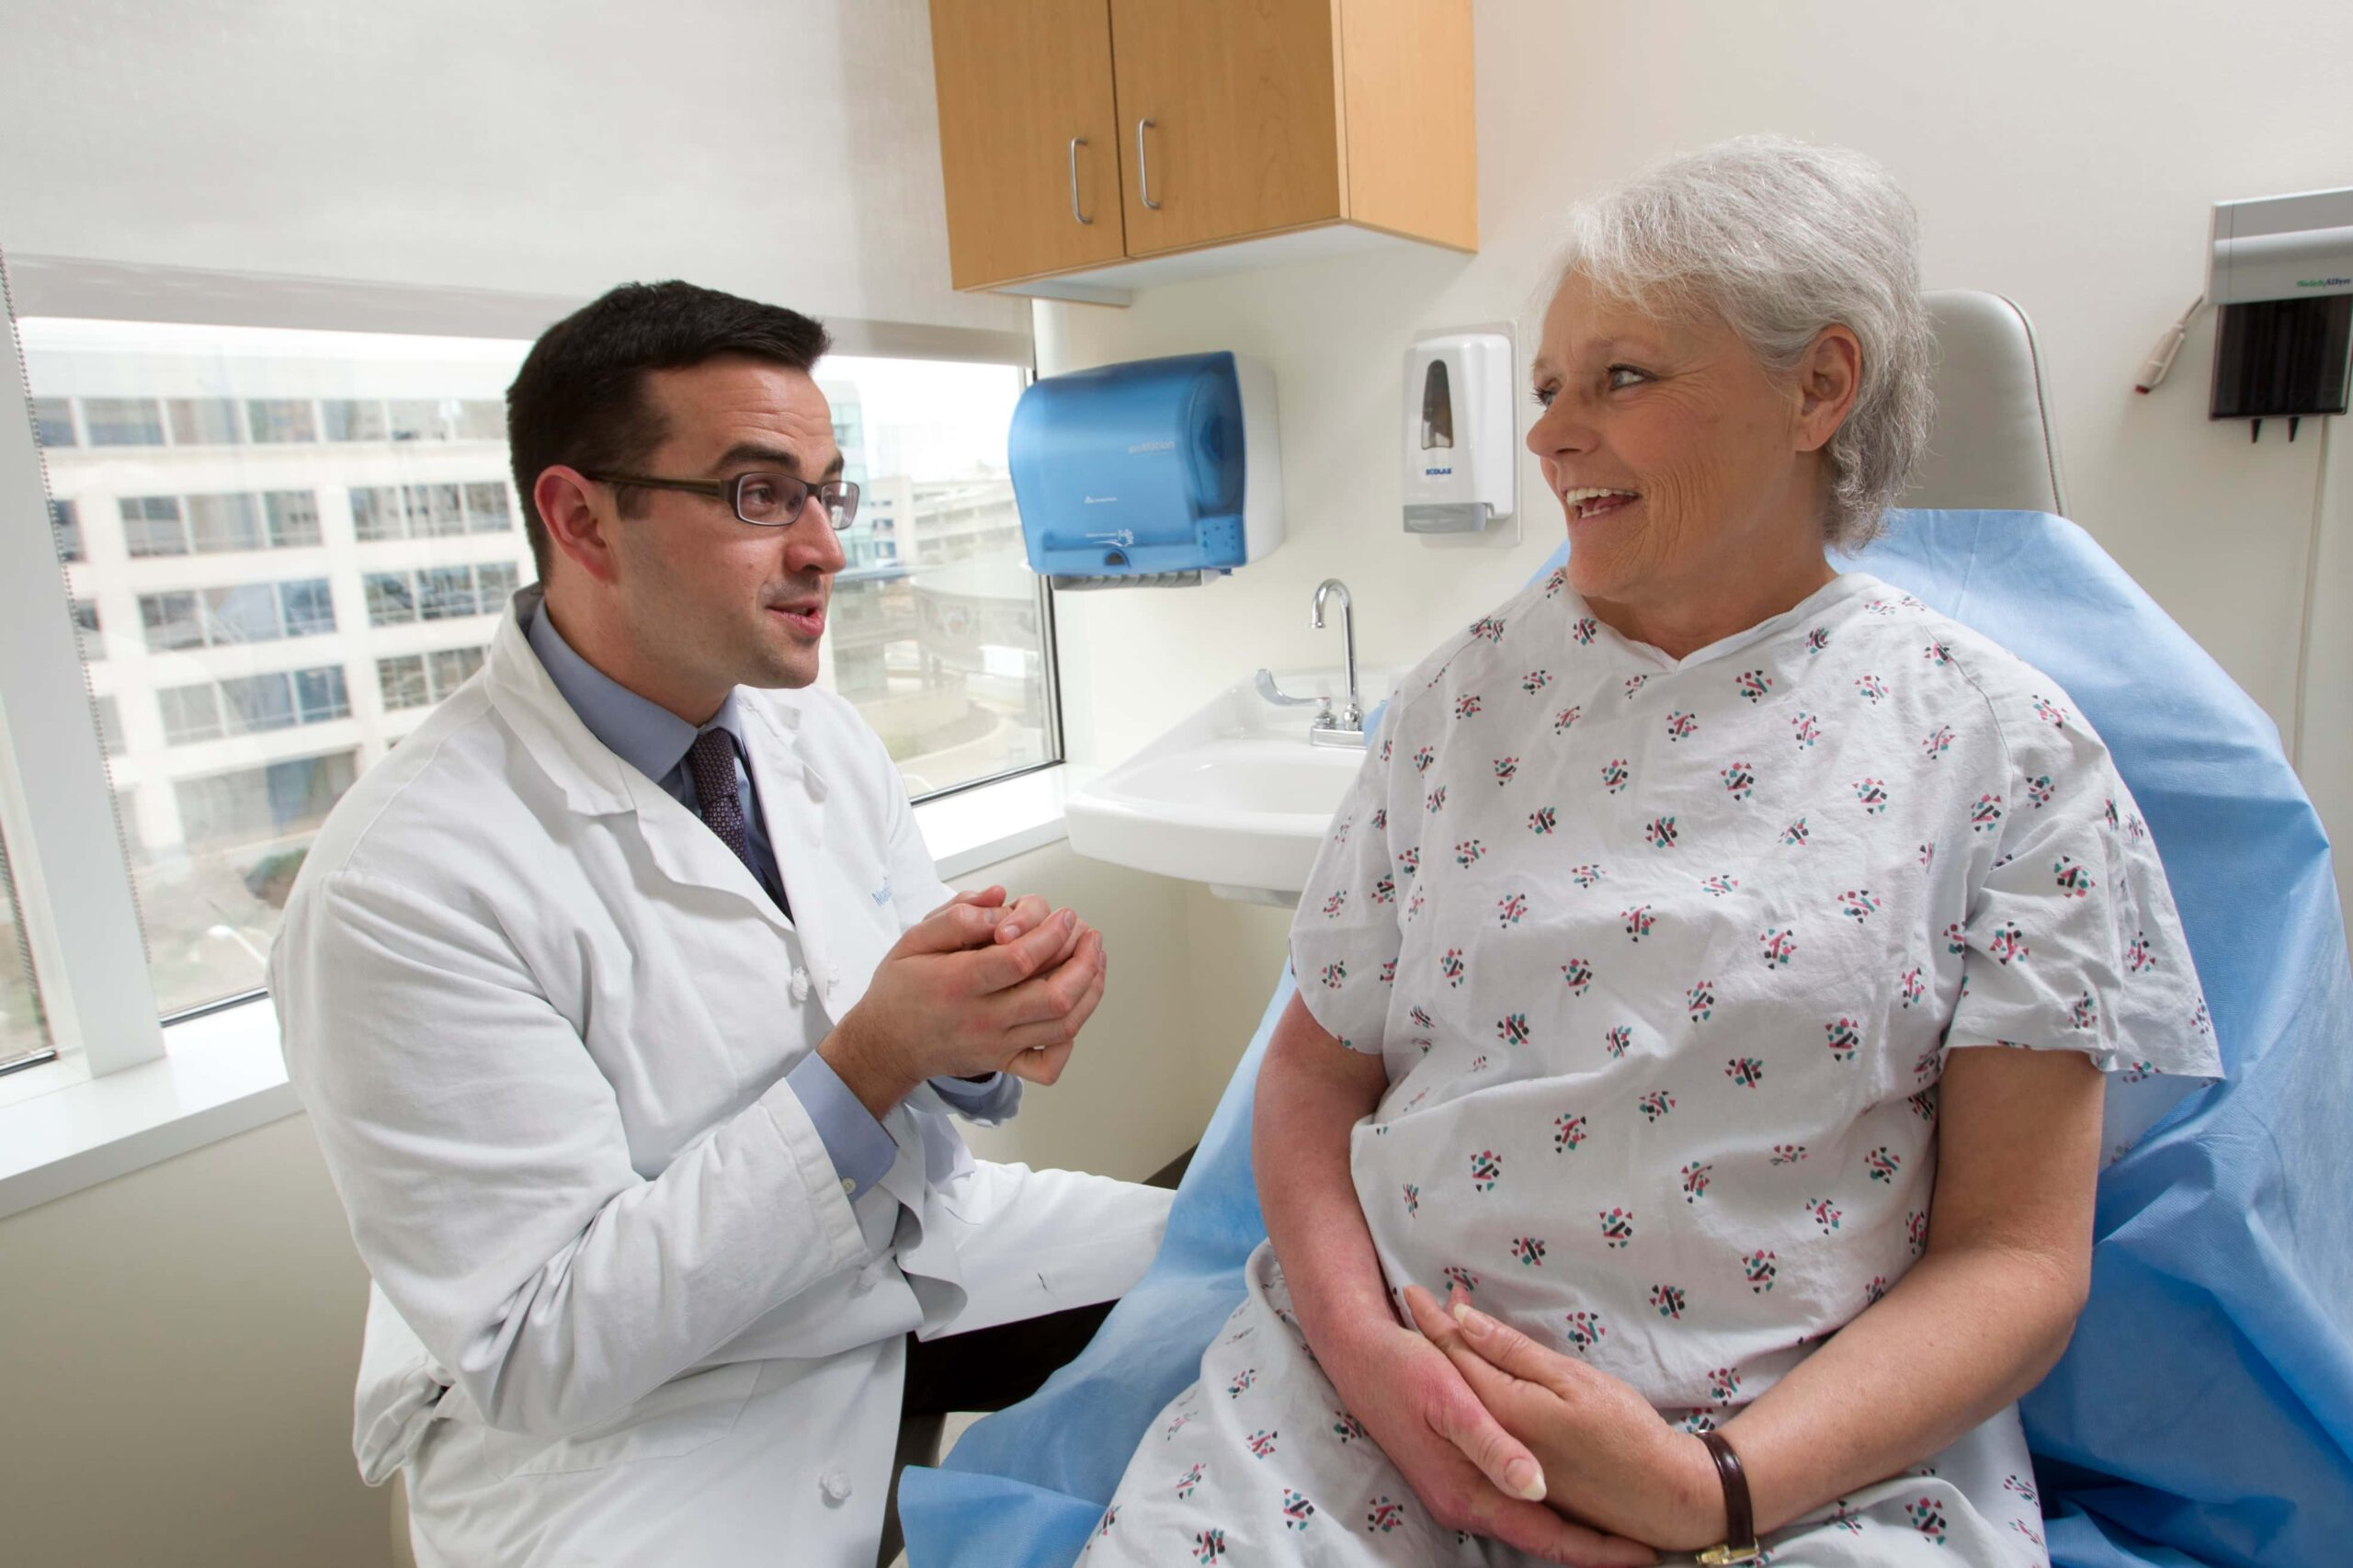 A physician talks with a patient in an exam room at the N.C. Cancer Hospital